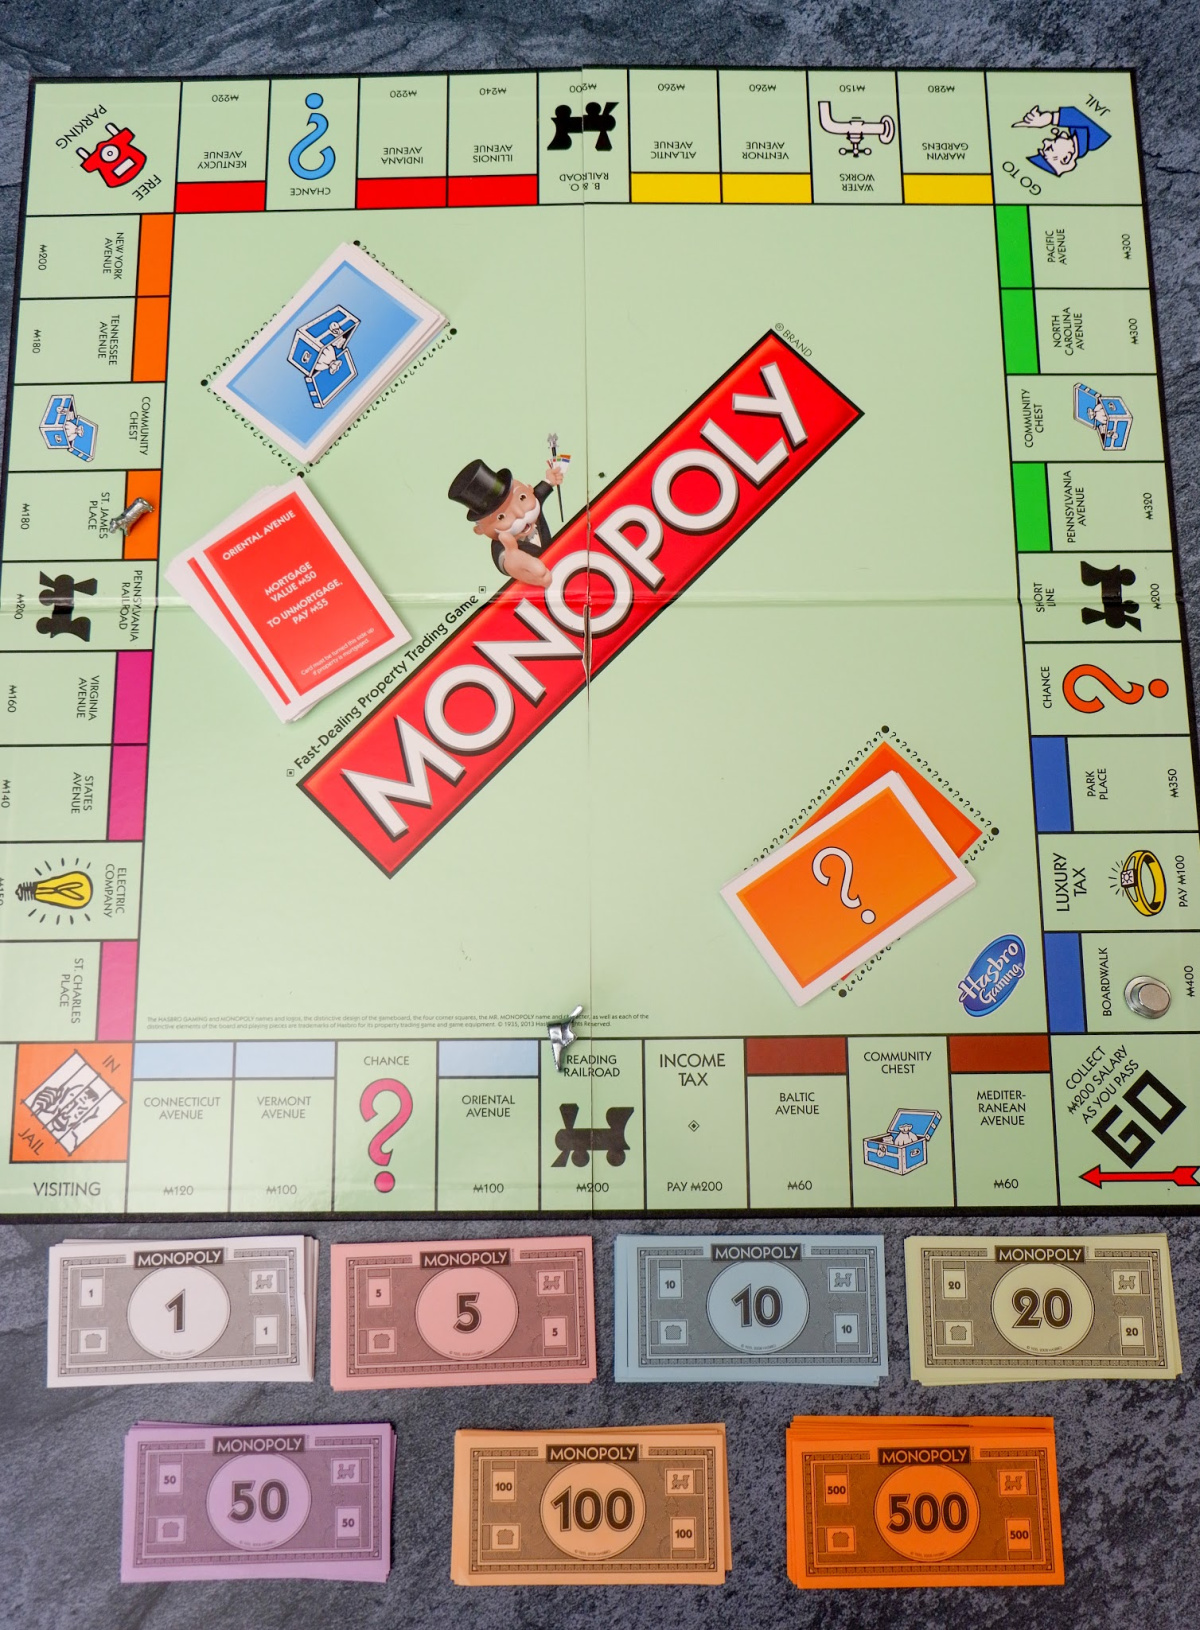 monopoly board and money